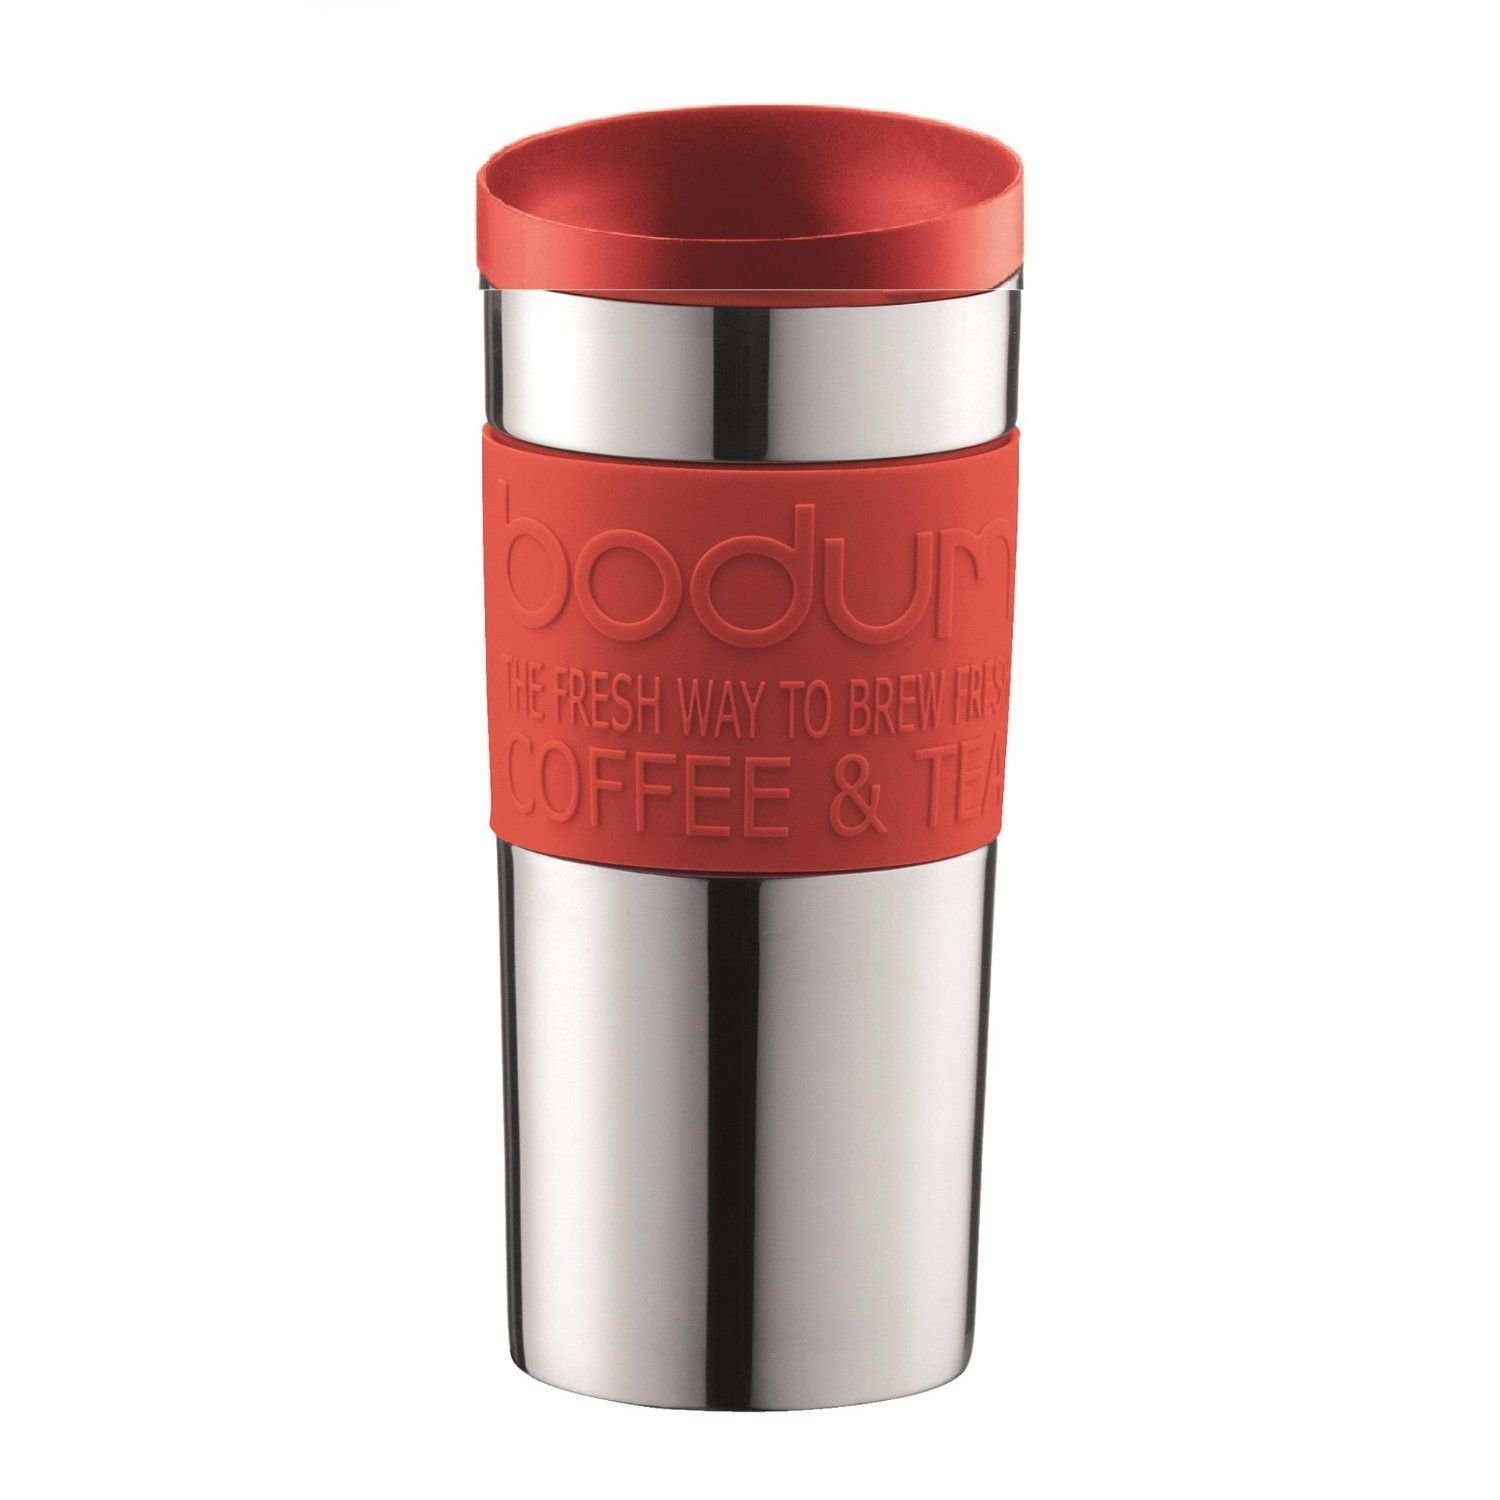 Bodum Stainless Steel Travel Vacuum Mug (0.35L) - Red